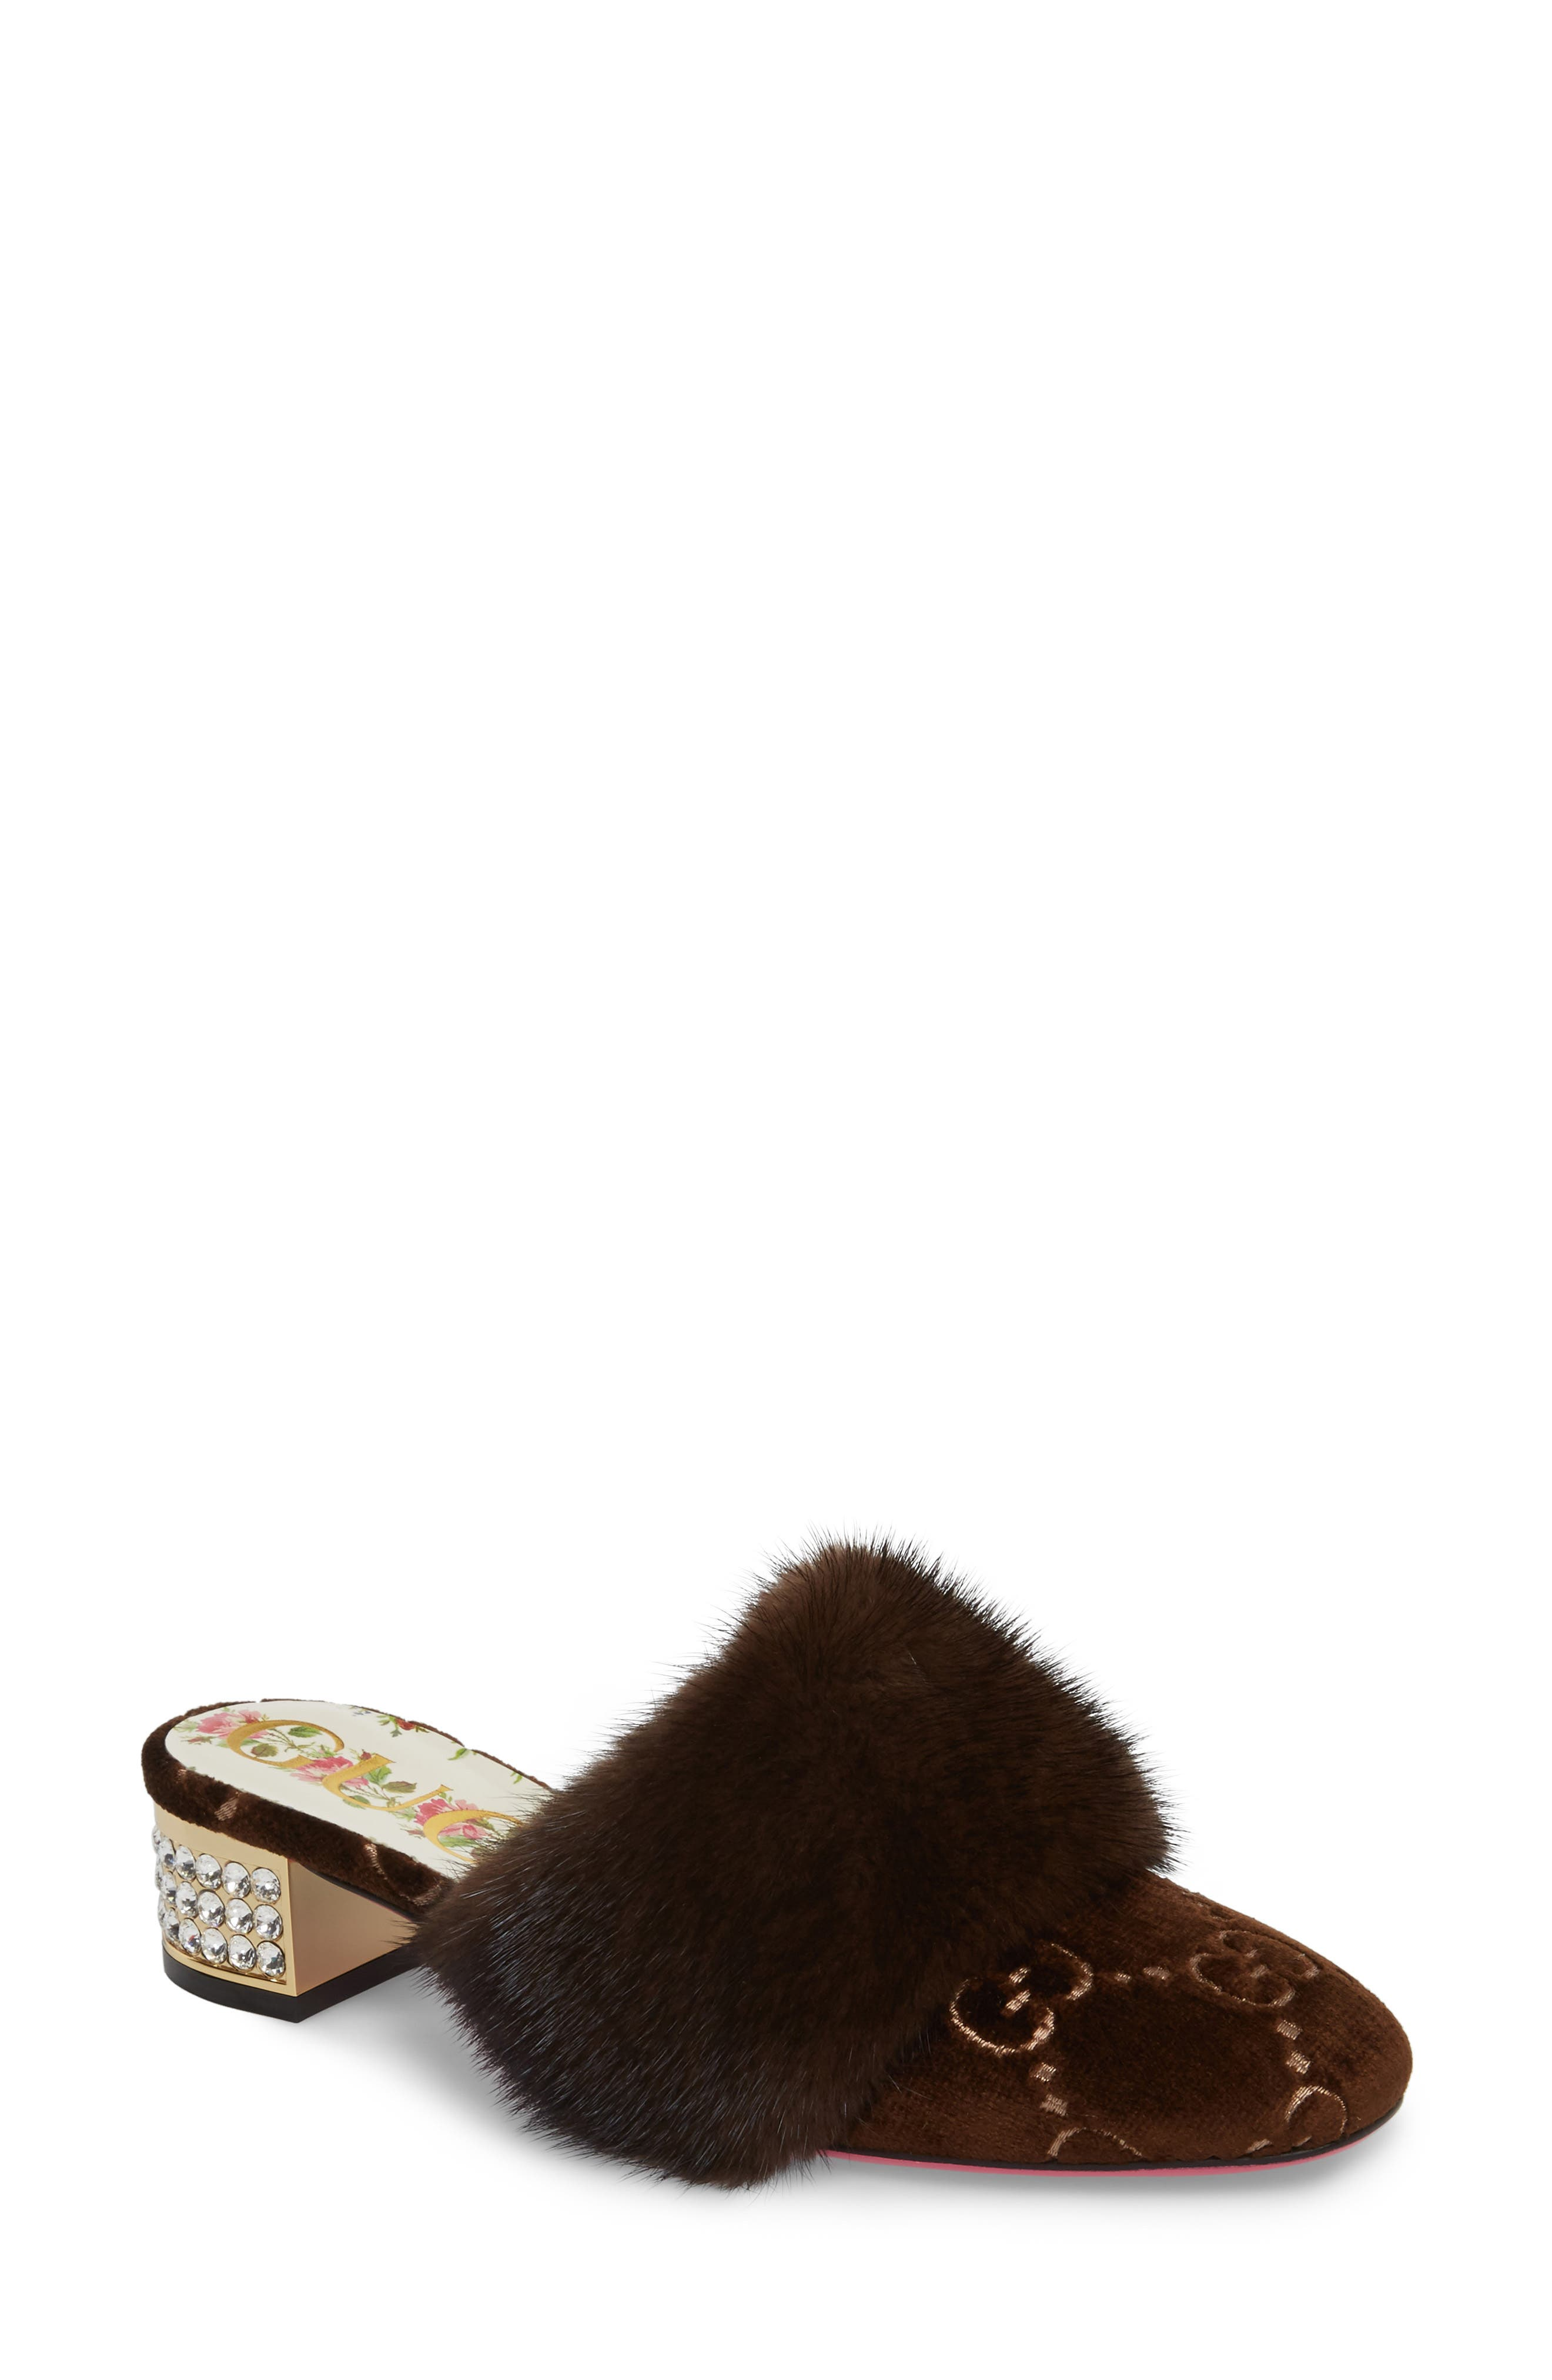 Alternate Image 1 Selected - Gucci Candy Genuine Mink Fur Mule (Women)